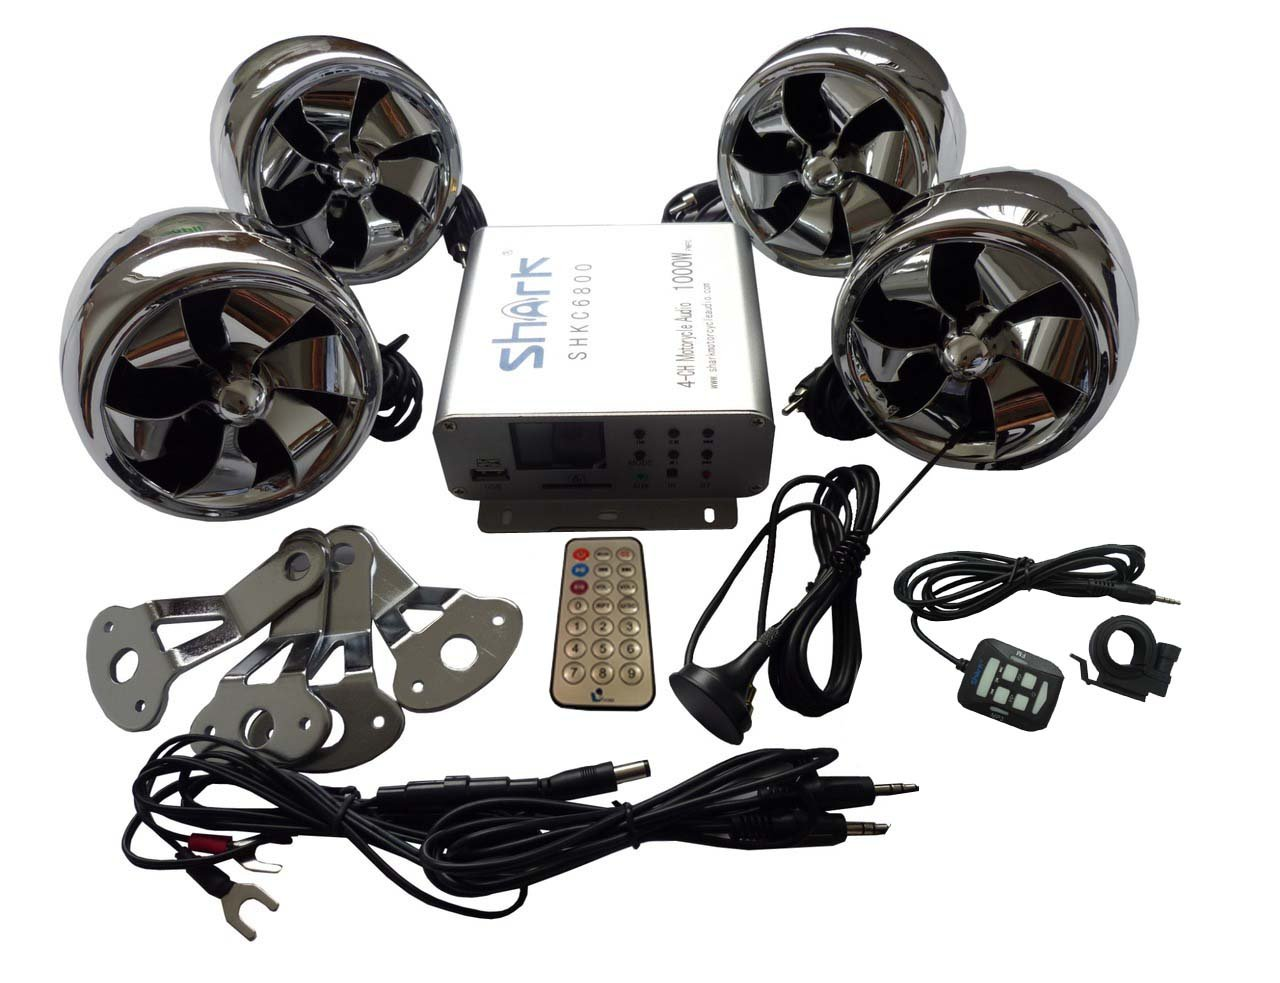 Shkc6800 Chrome 1000 Watt 4 Ch Motorcycle Audio System w/ 2 Remotes, Fm, Sd, Usb , Bluetooth for All Motorcycle, Atvs, Boats